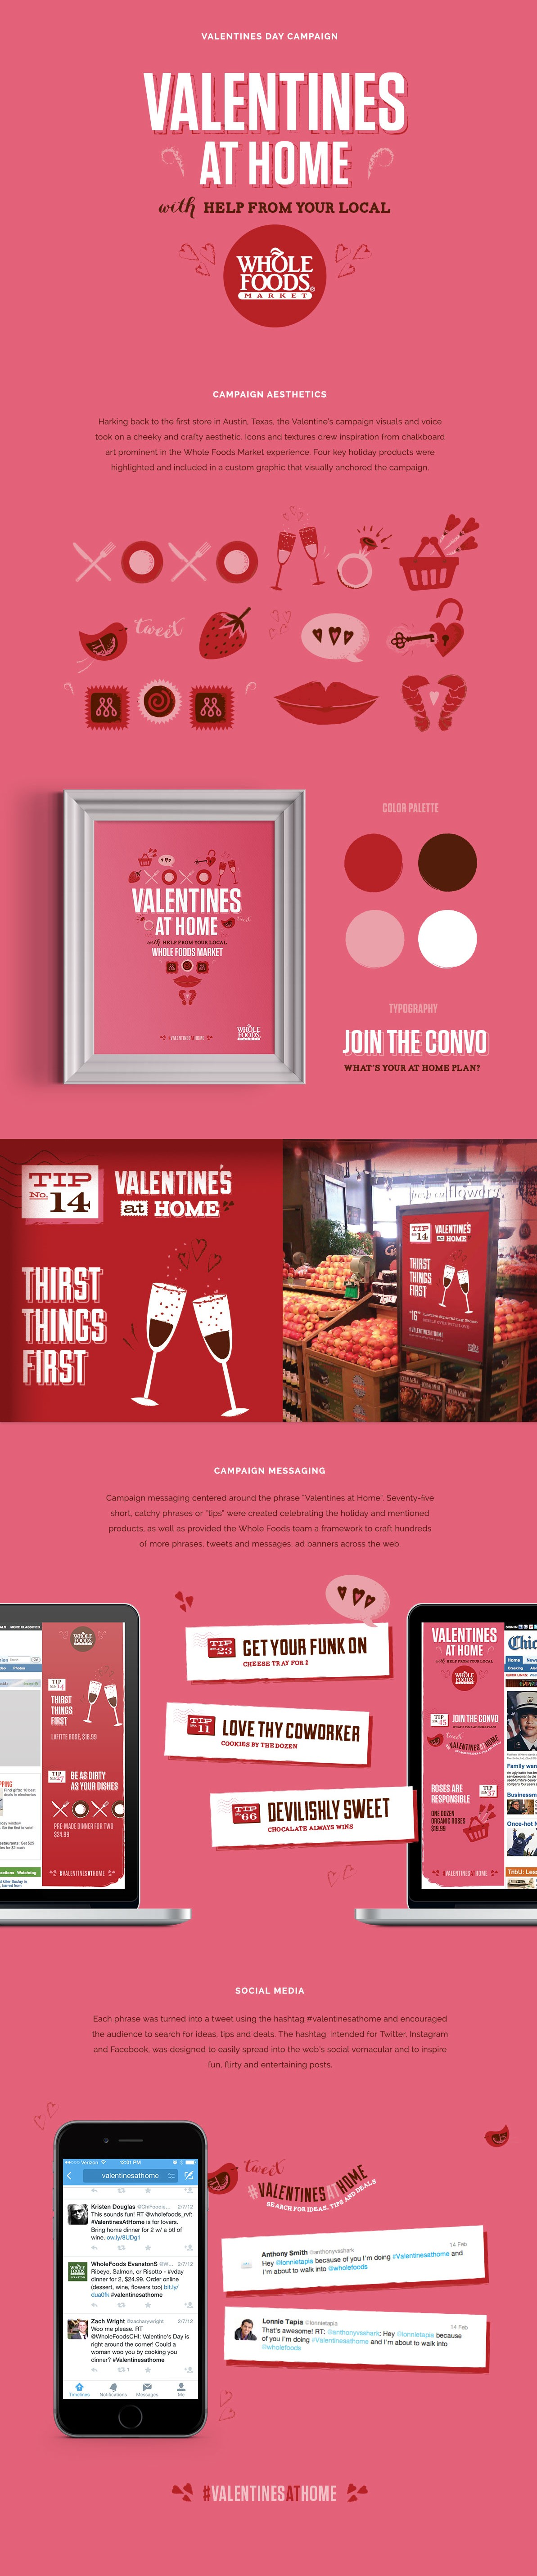 Whole Foods and Valentine's